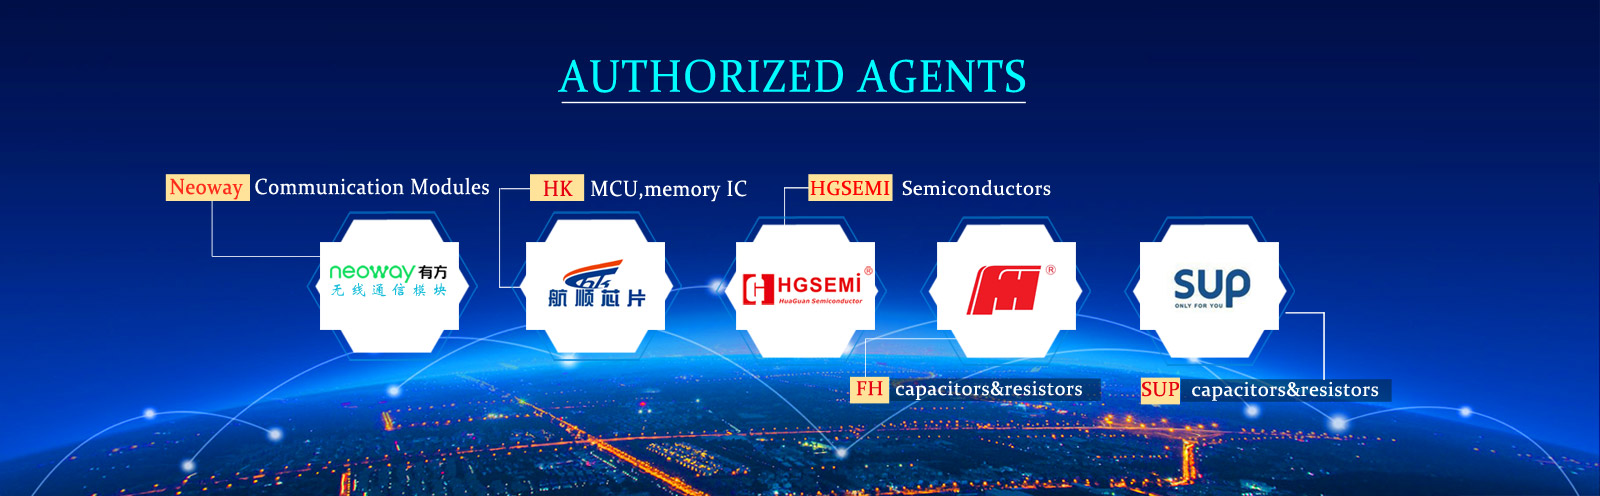 Authorized Agents